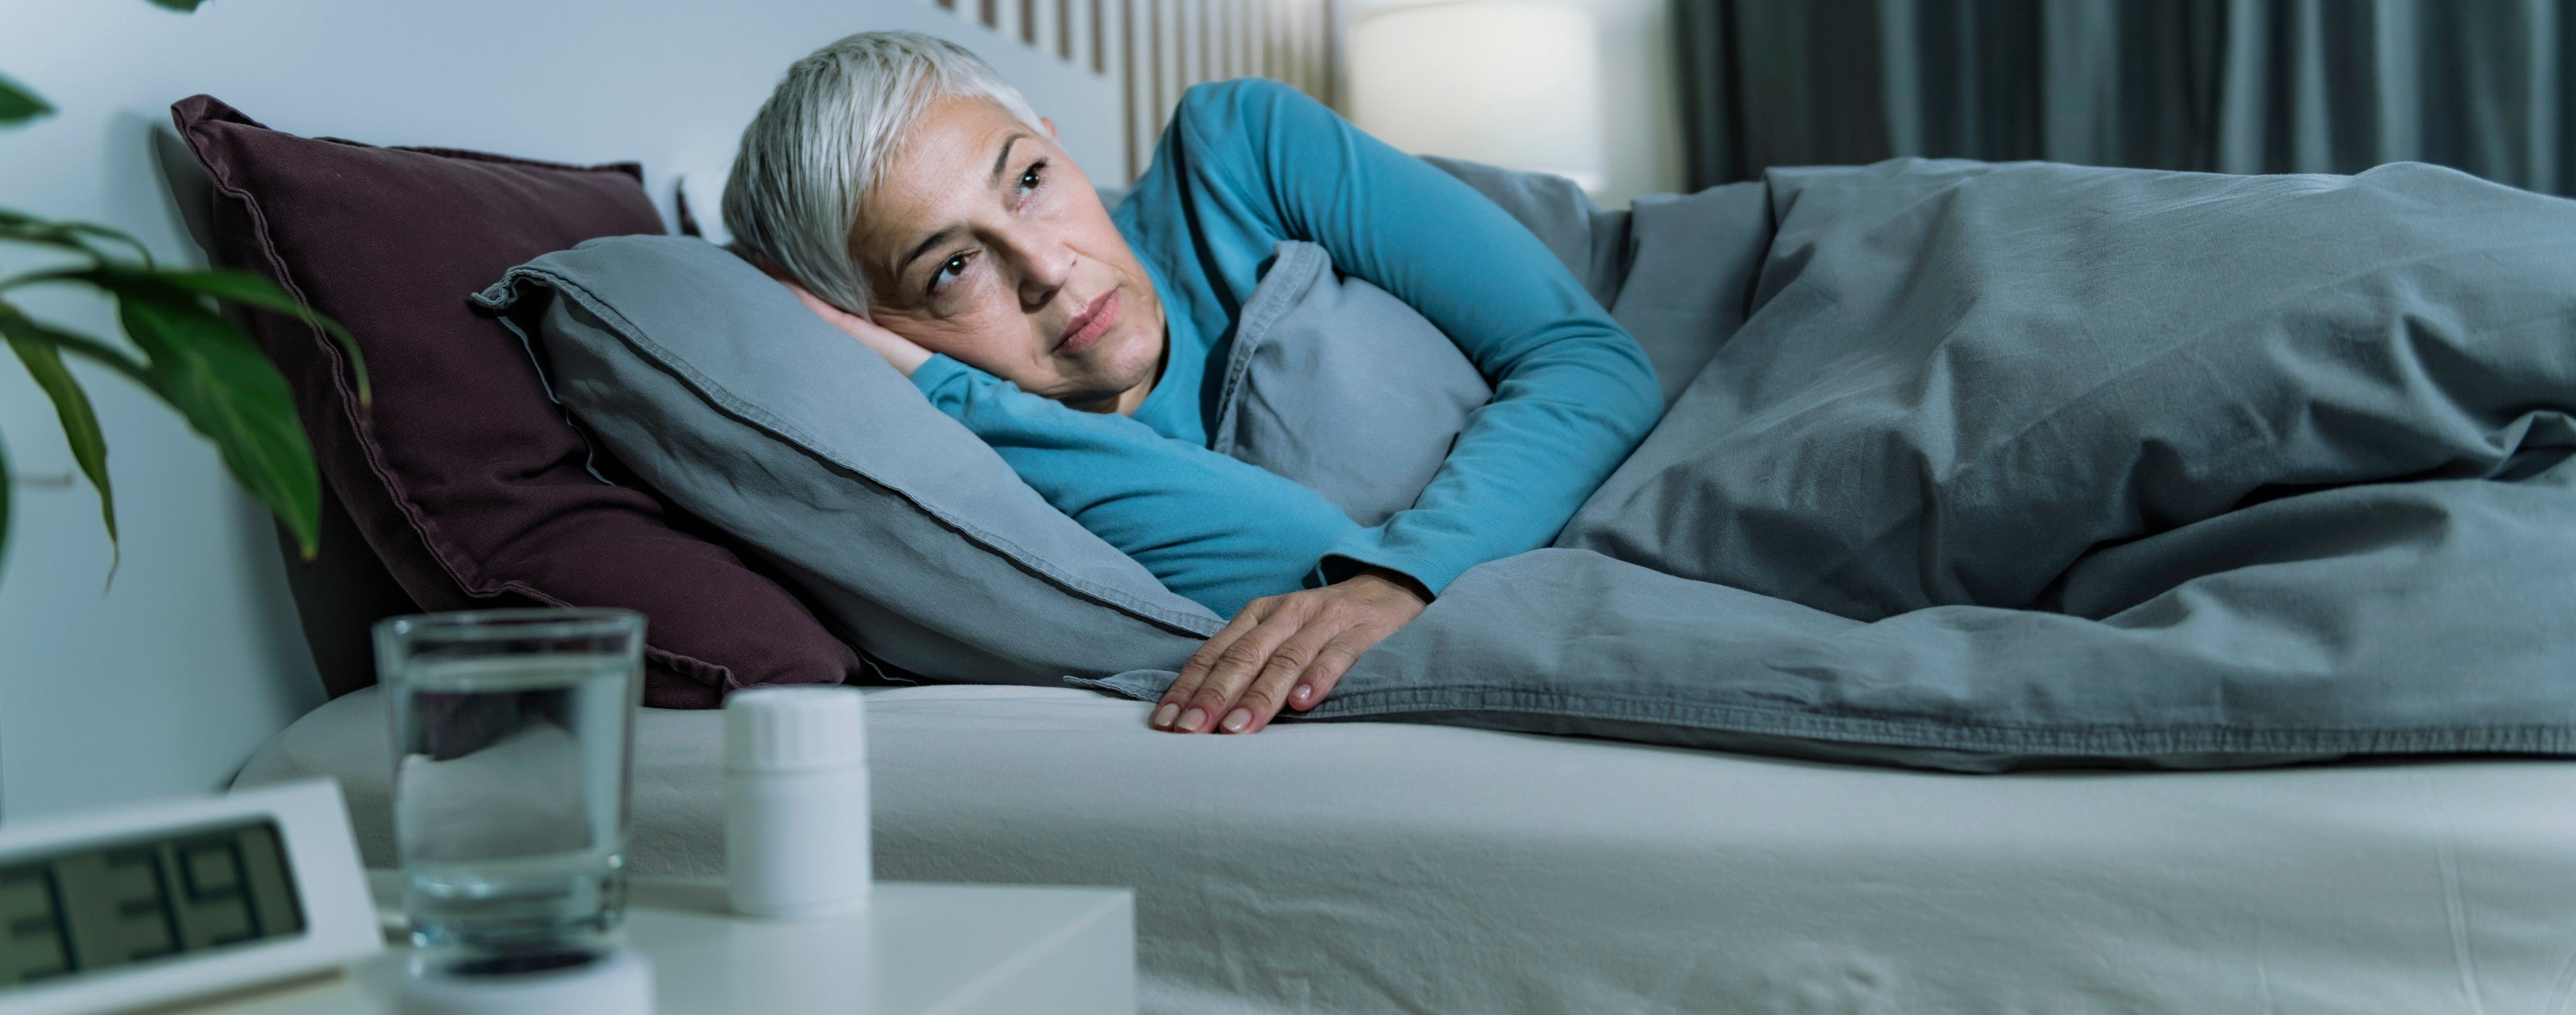 Woman stressed and lying in bed having difficulty falling asleep